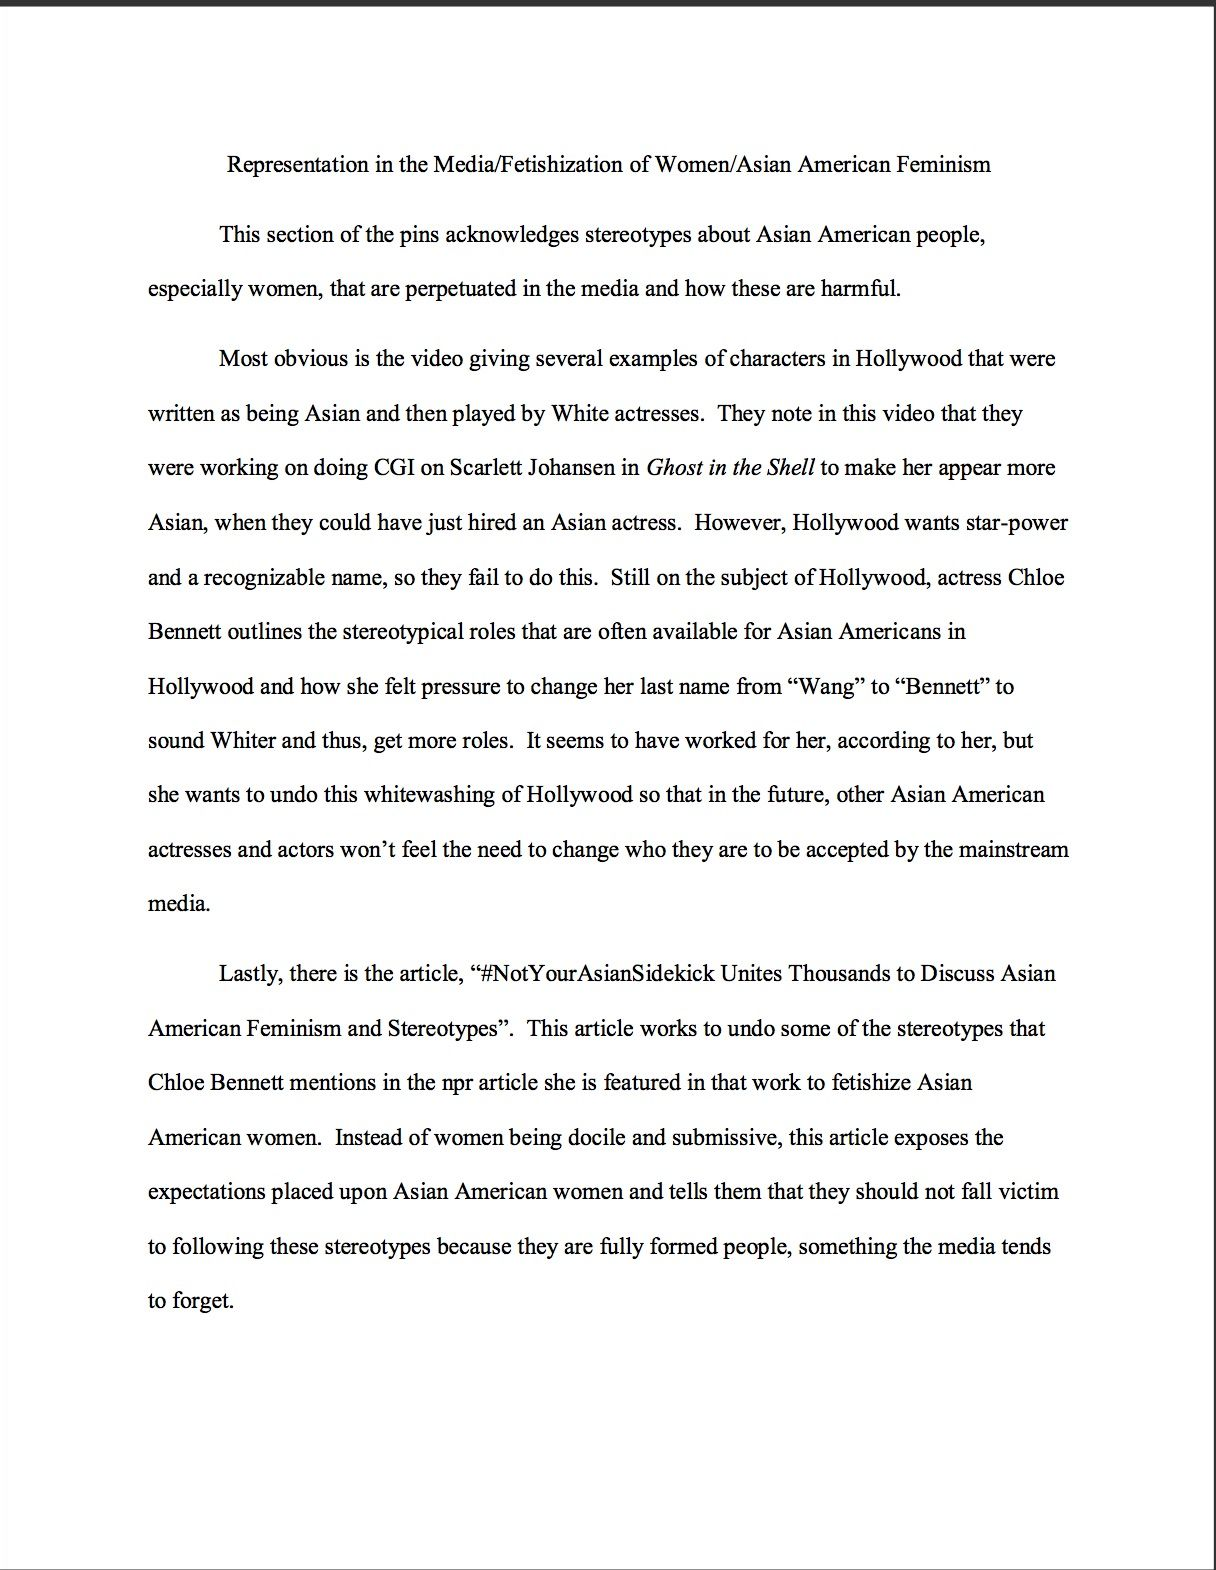 Sample Narrative Essay High School Essay Writing Help Writing Process Writing Jobs Job Analysis Write My  Essay Thesis Statement For An Argumentative Essay also What Is Thesis Statement In Essay Pin By Zoe Albrecht On Etst  Sample Resume Resume Essay Writing Personal Narrative Essay Examples High School